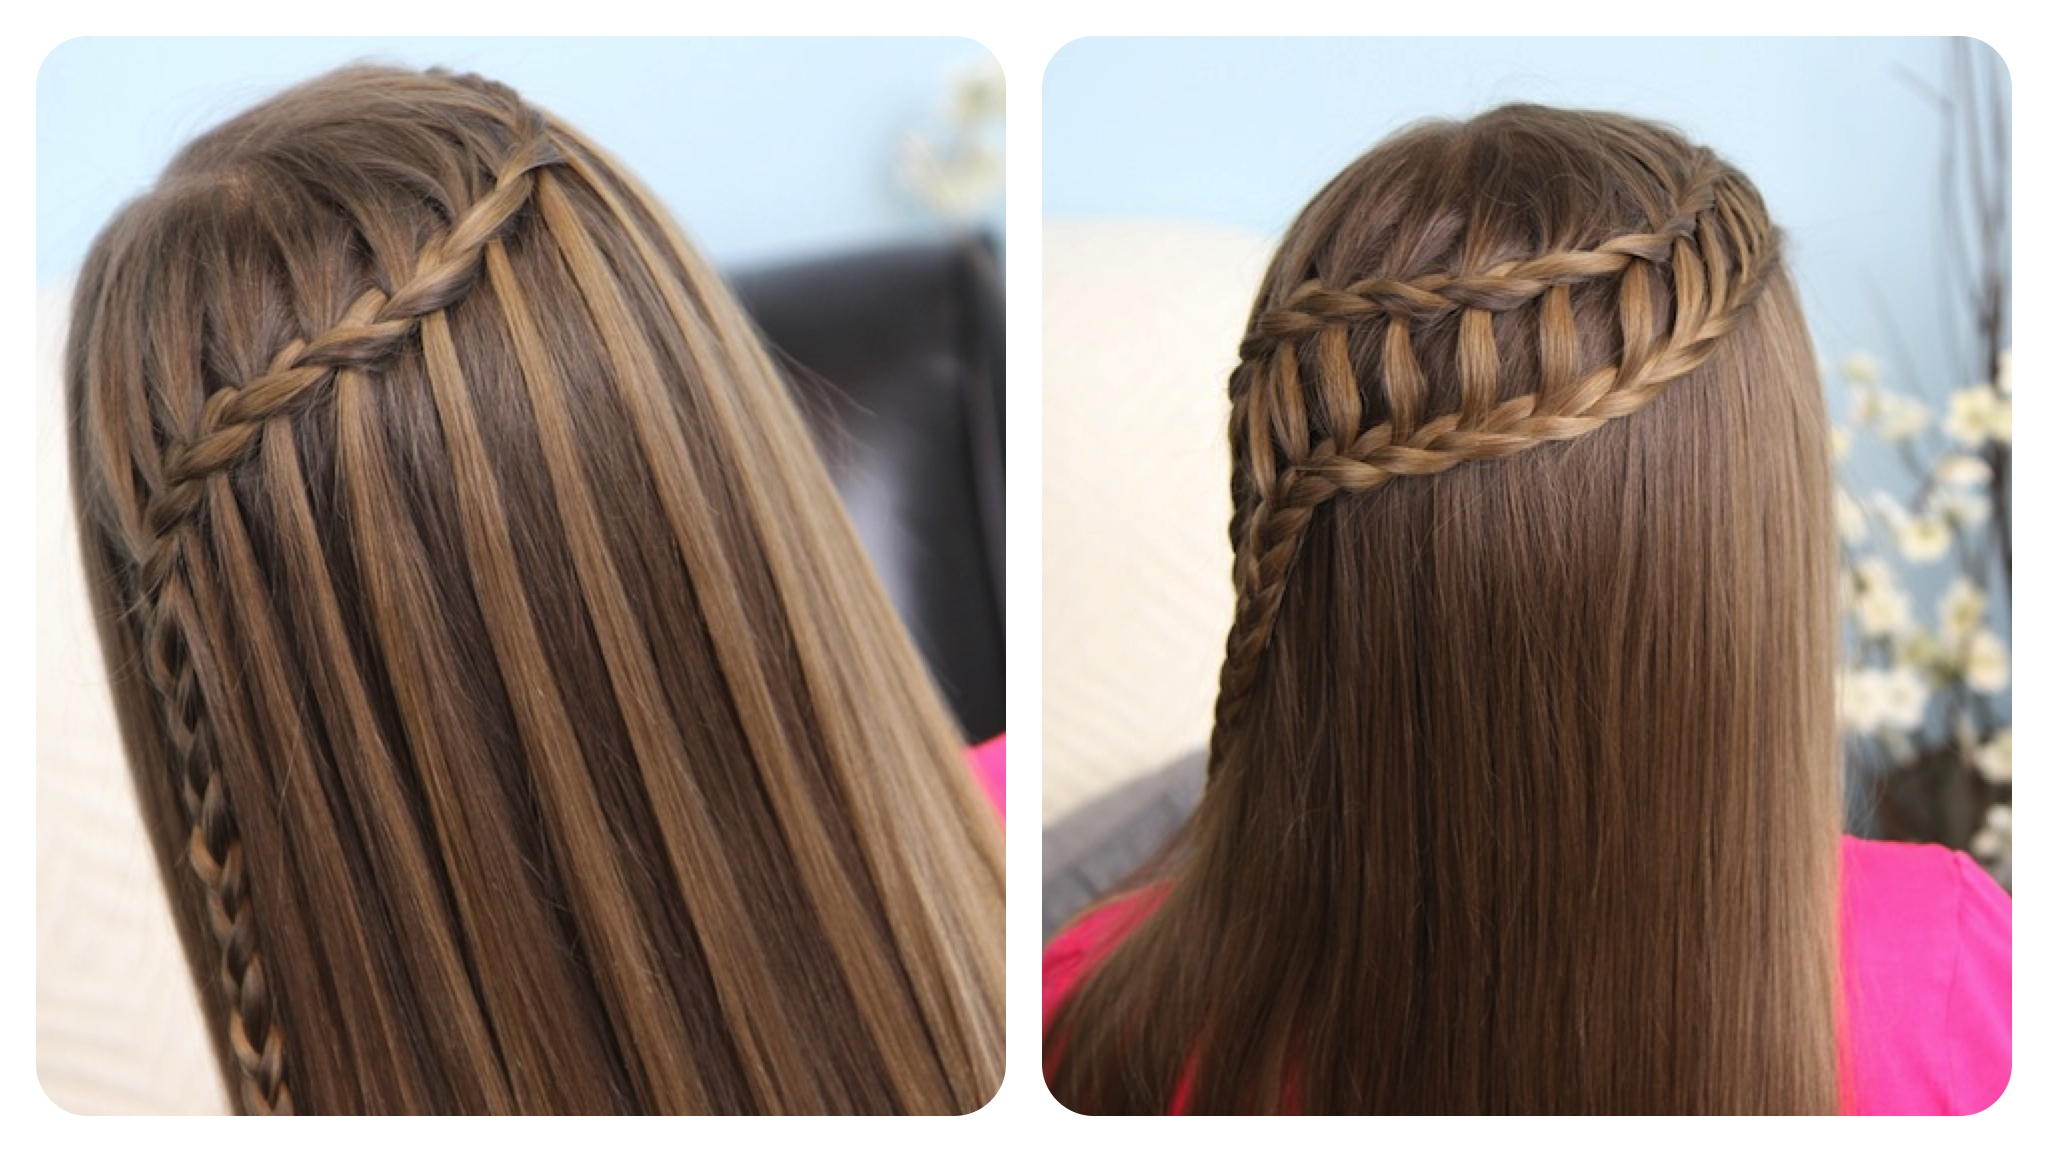 Feather Waterfall Braid and Ladder Braid Combo | Cute Hairstyles